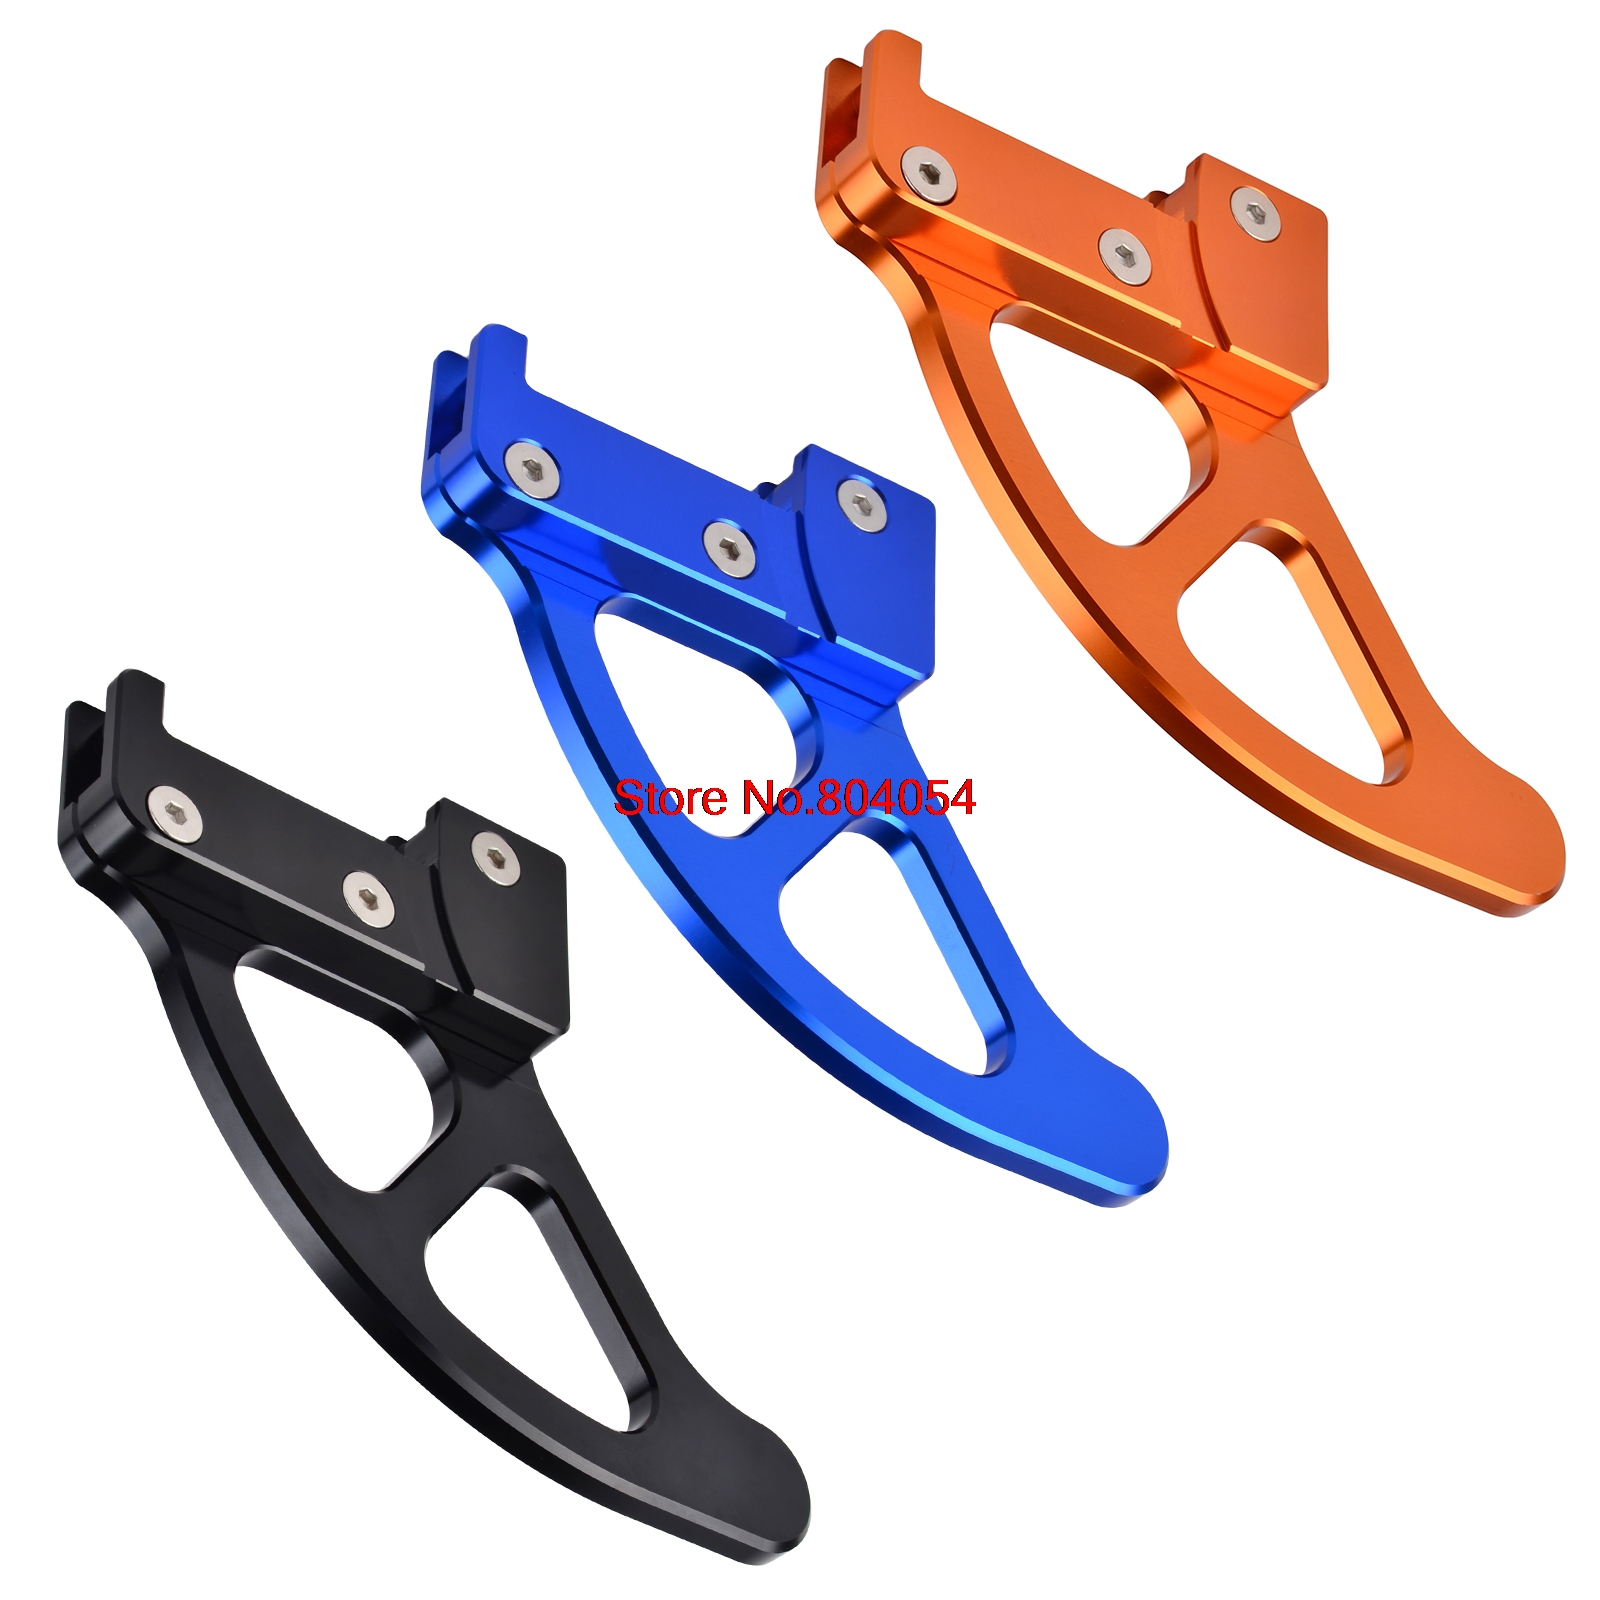 Rear Brake Disc Guard Protector For KTM 85 125 200 250 300 350 400 450 500 525 530 SX XC SXF XCW EXC EXC-F SXS XCF-W MXC SMR orange cnc billet factory oil filter cover for ktm sx exc xc f xcf w 250 400 450 520 525 540 950 990